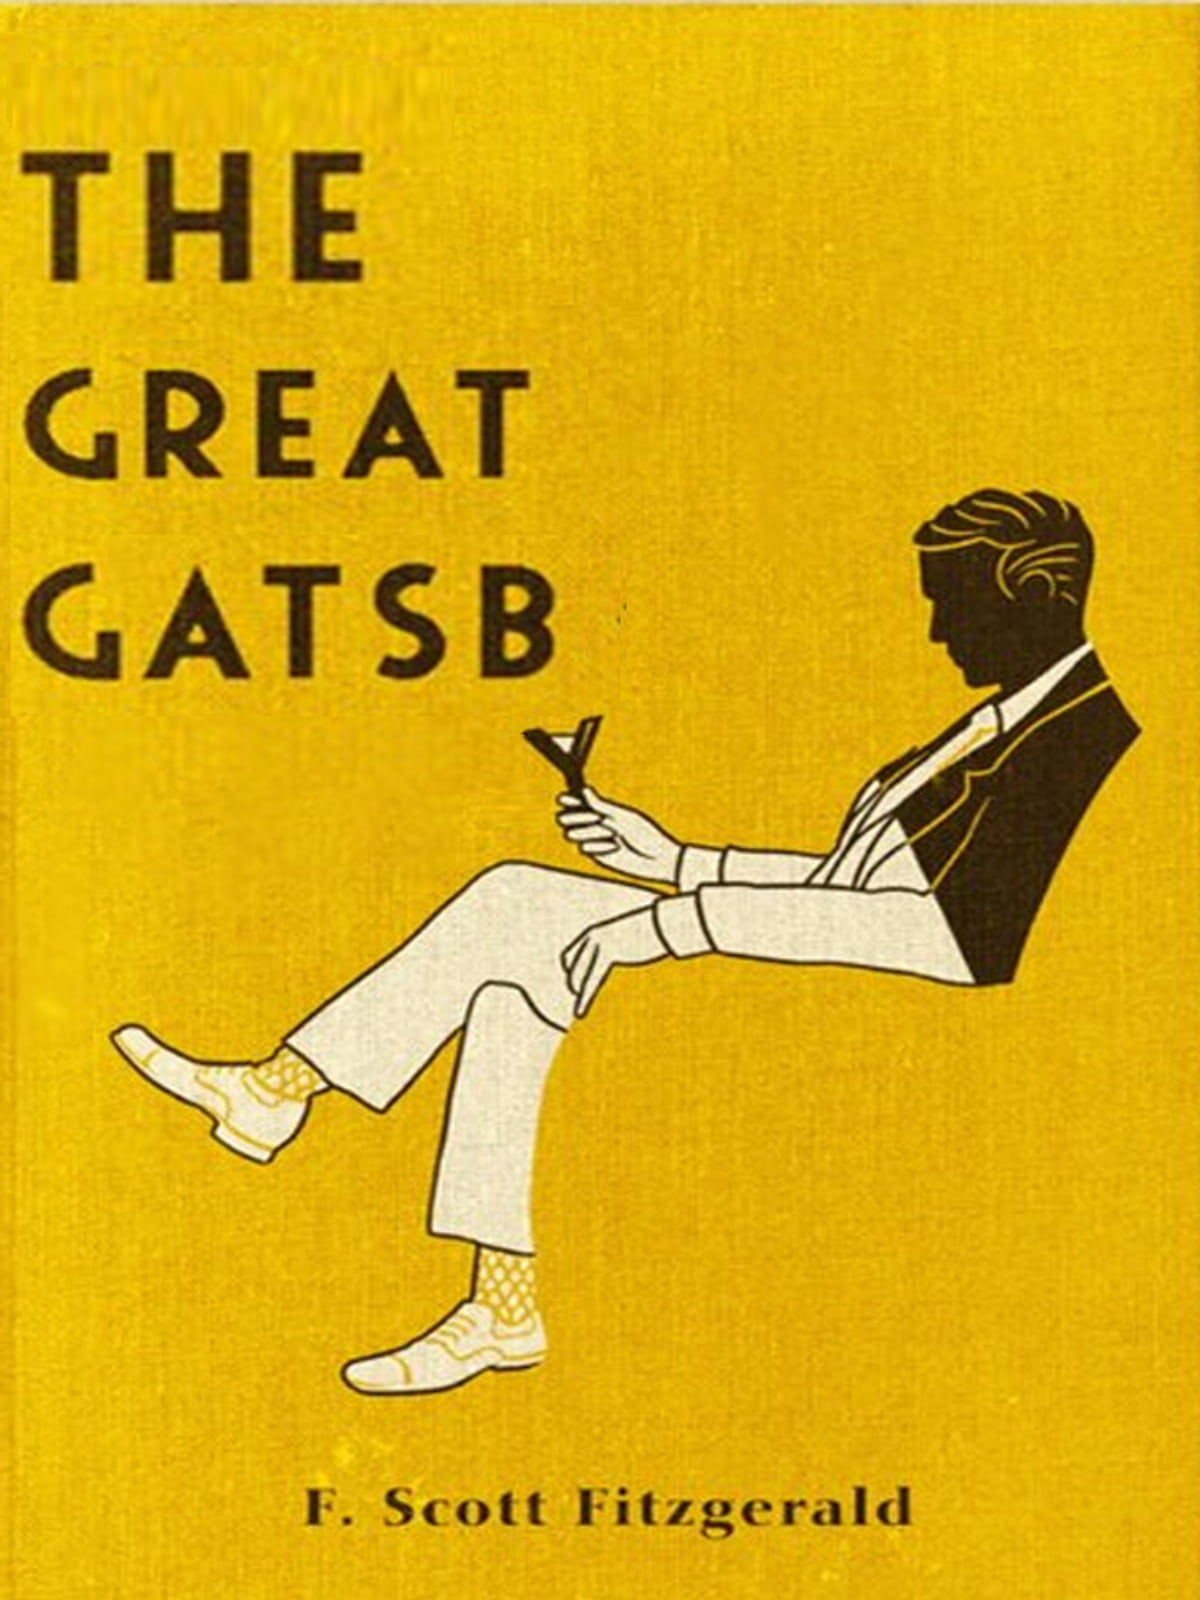 Recent Forum Posts on The Great Gatsby